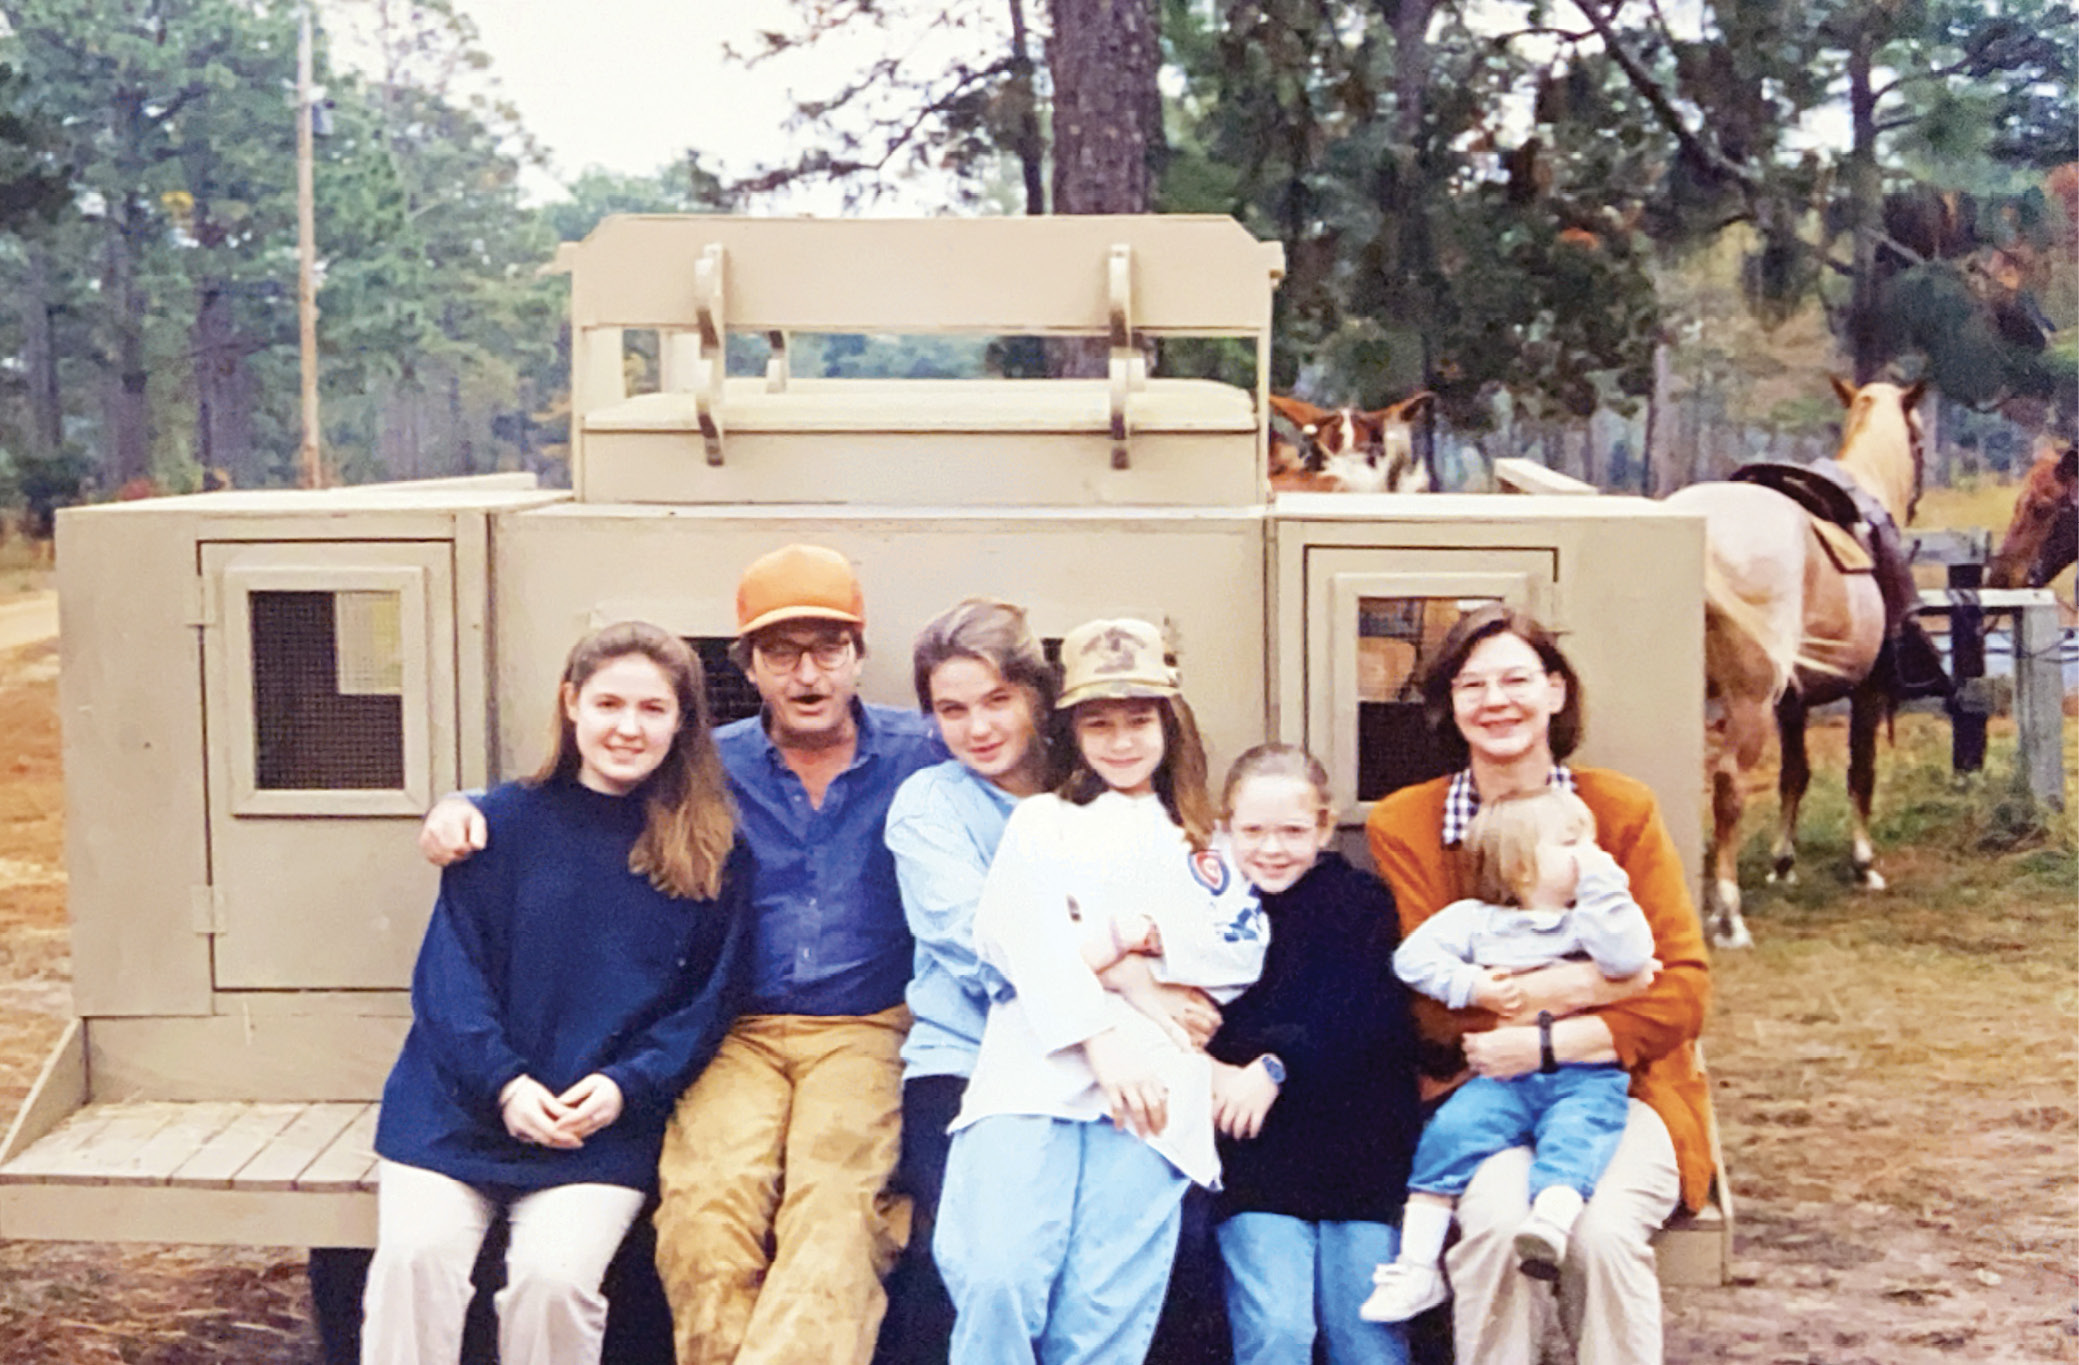 The Strachan Donnelley family on the Ashepoo mule wagon, circa 1989:  (from left) Naomi, dad Strachan, Inanna, Aidan, Ceara, mom Vivian, and Tegan.